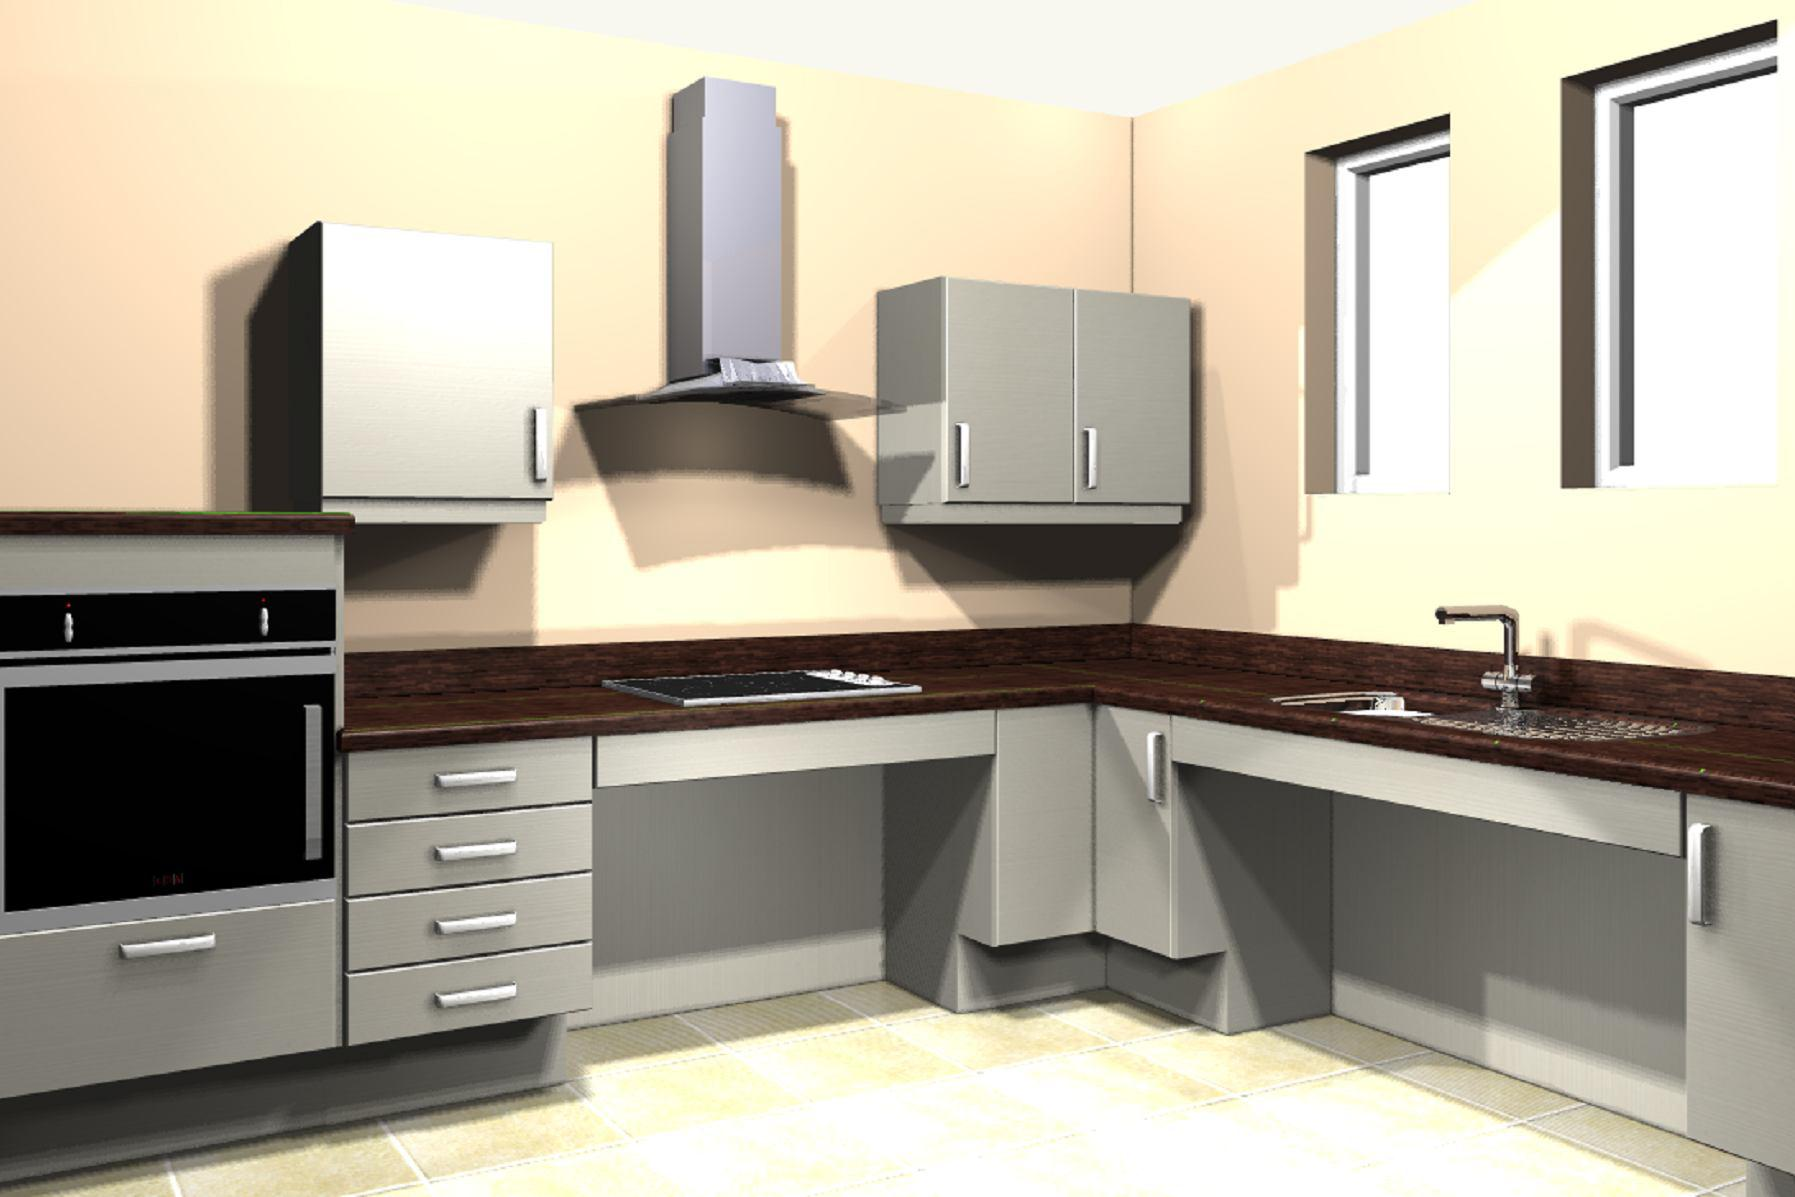 Ergonomic Italian Kitchen Design Suitable For Wheelchair Users